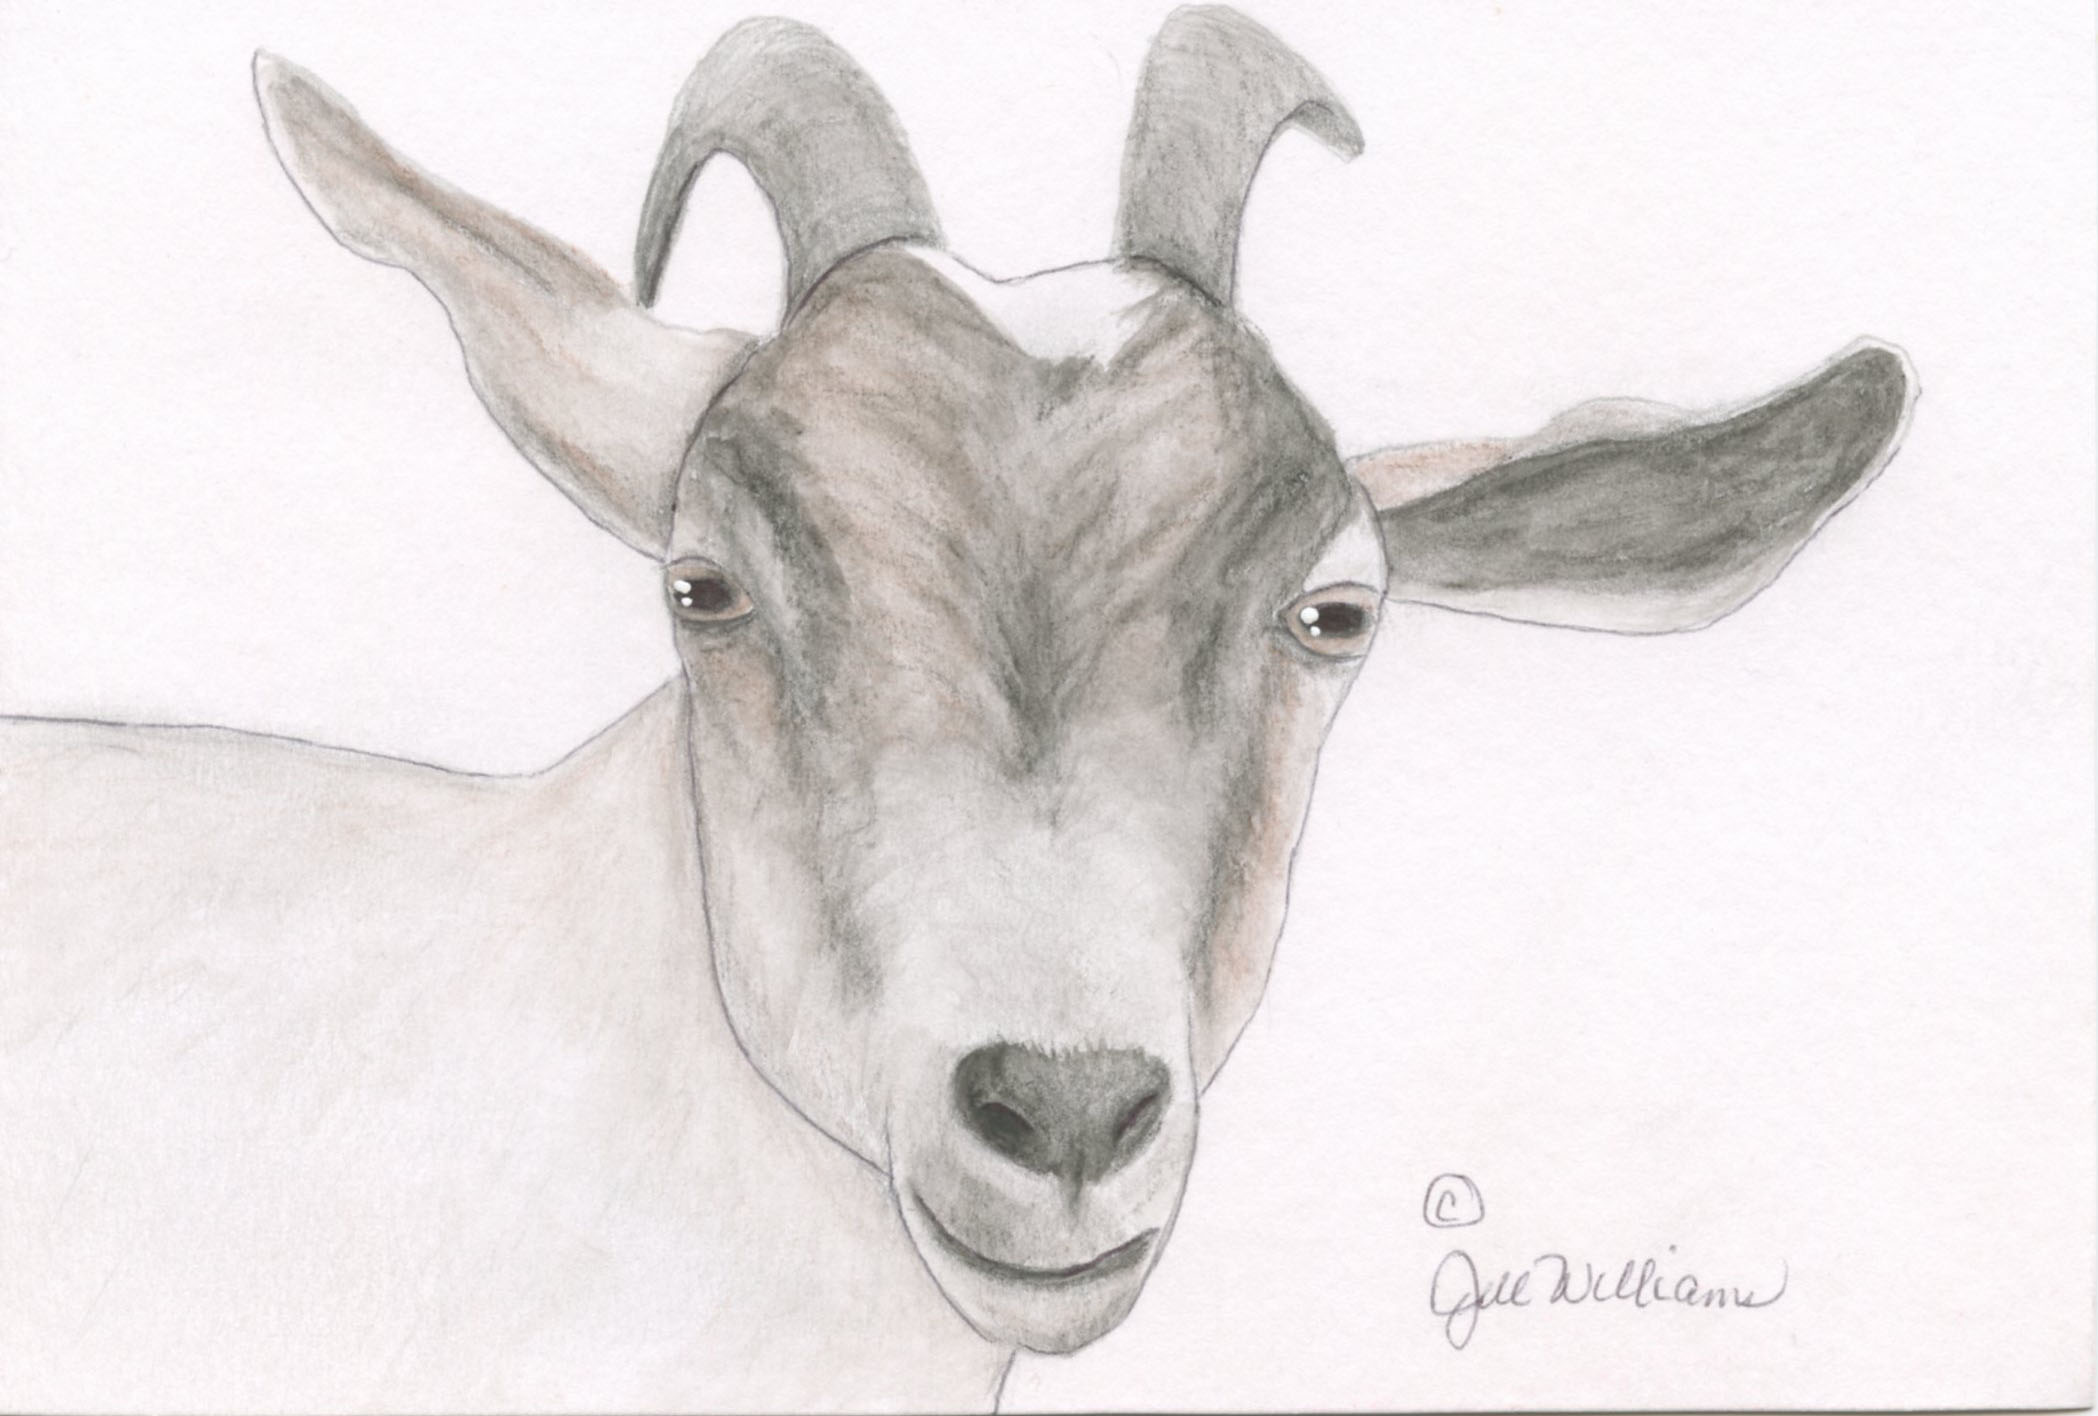 Penelope - One of our dairy girls, Penelope, and model for our unscented goat milk soap.